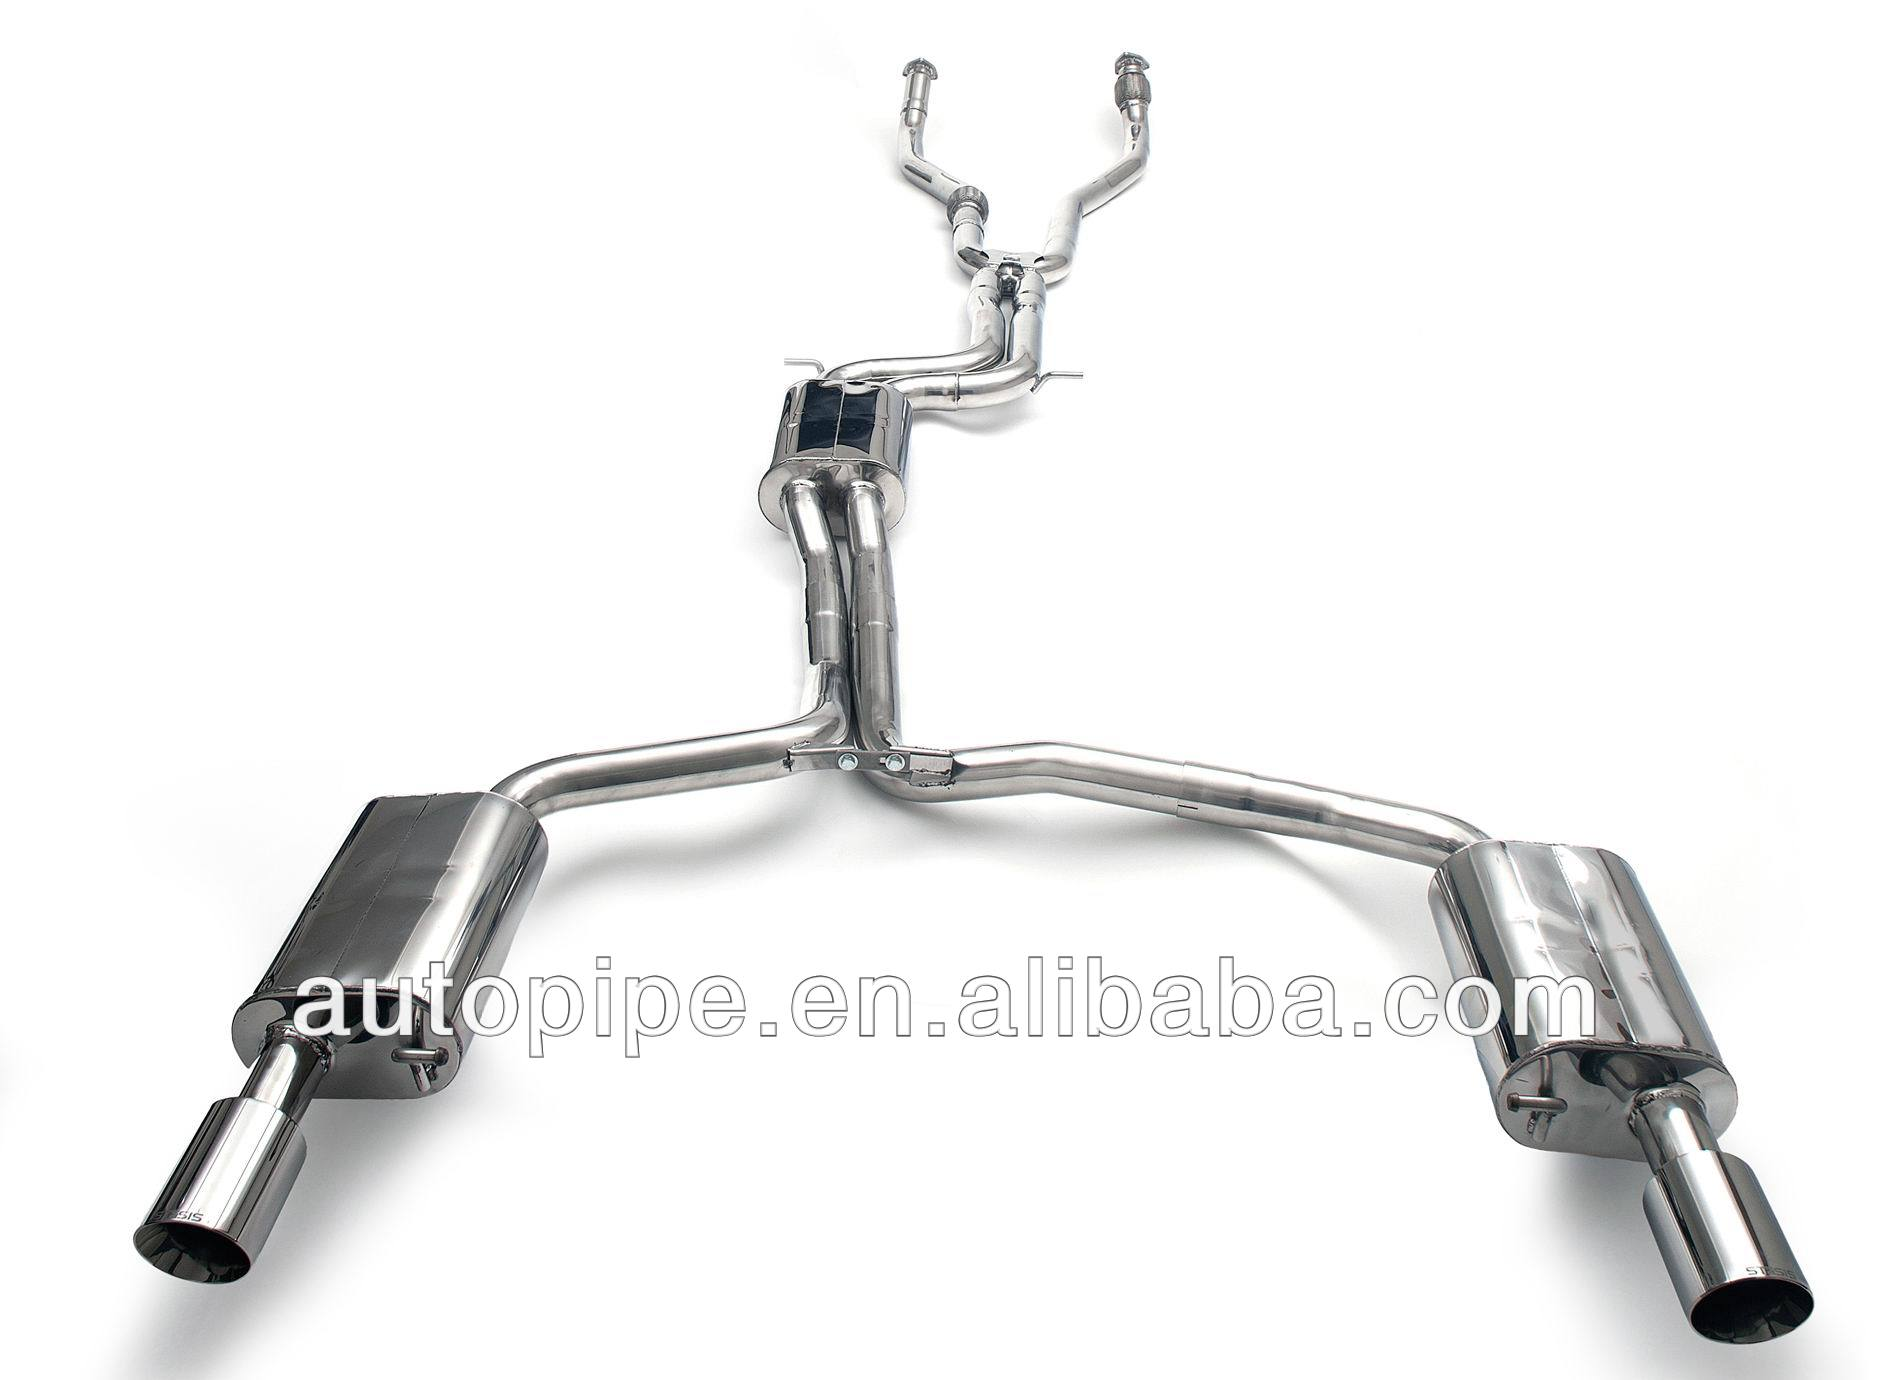 Exhaust system for audi a7 3.0T